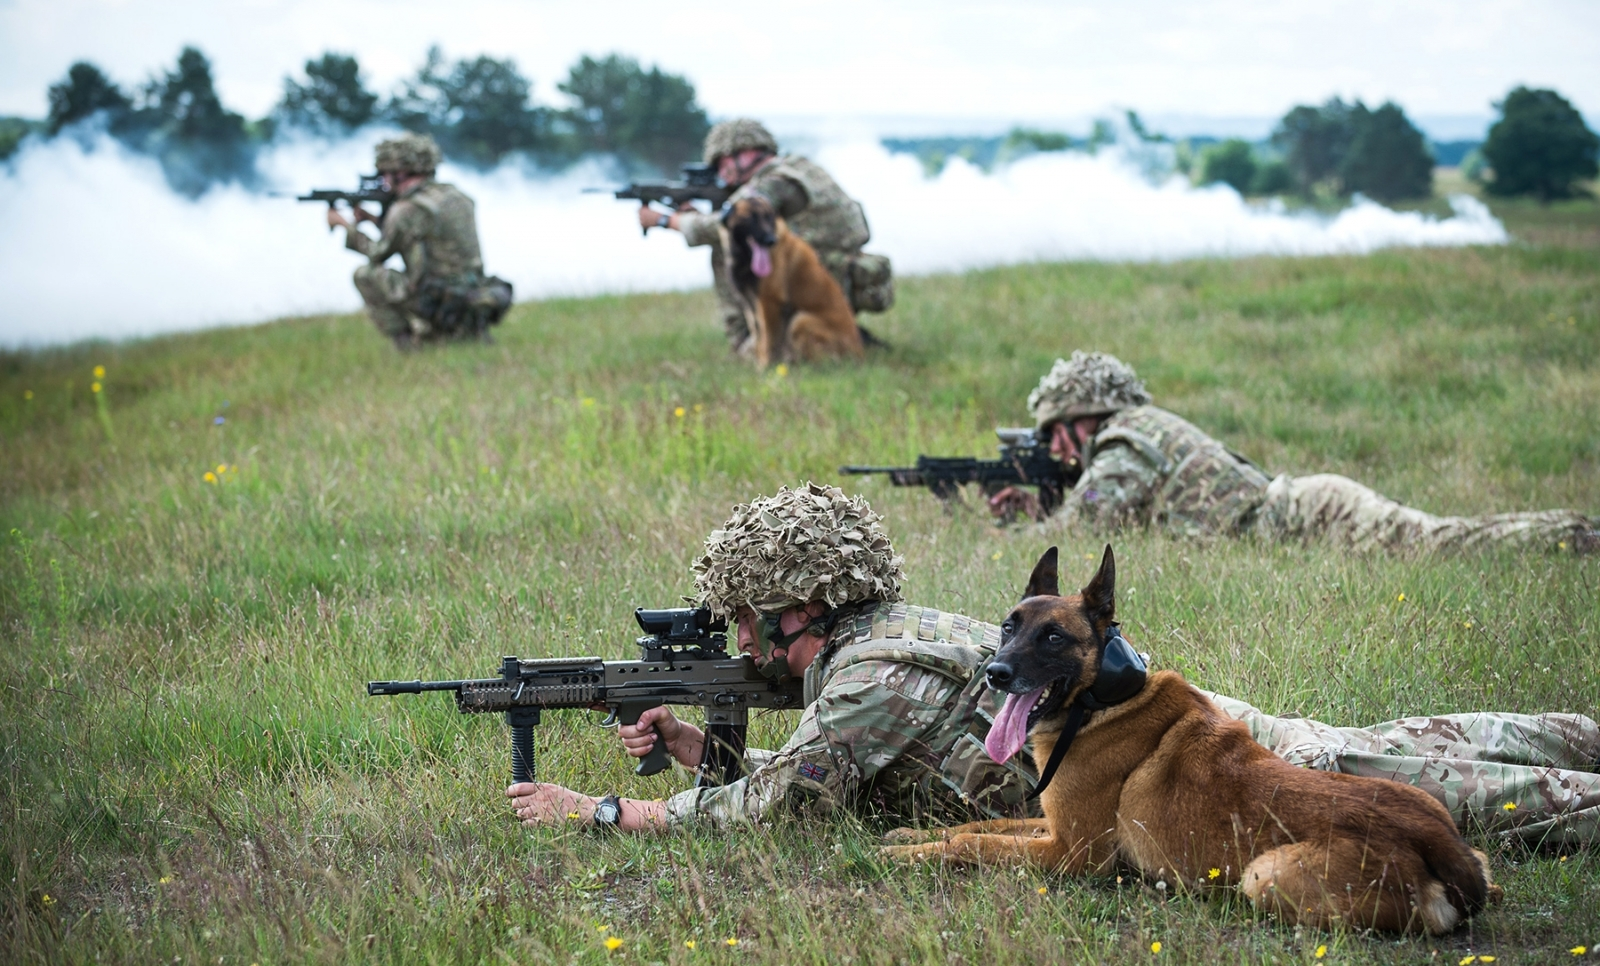 Dogs and soldiers on training exercise